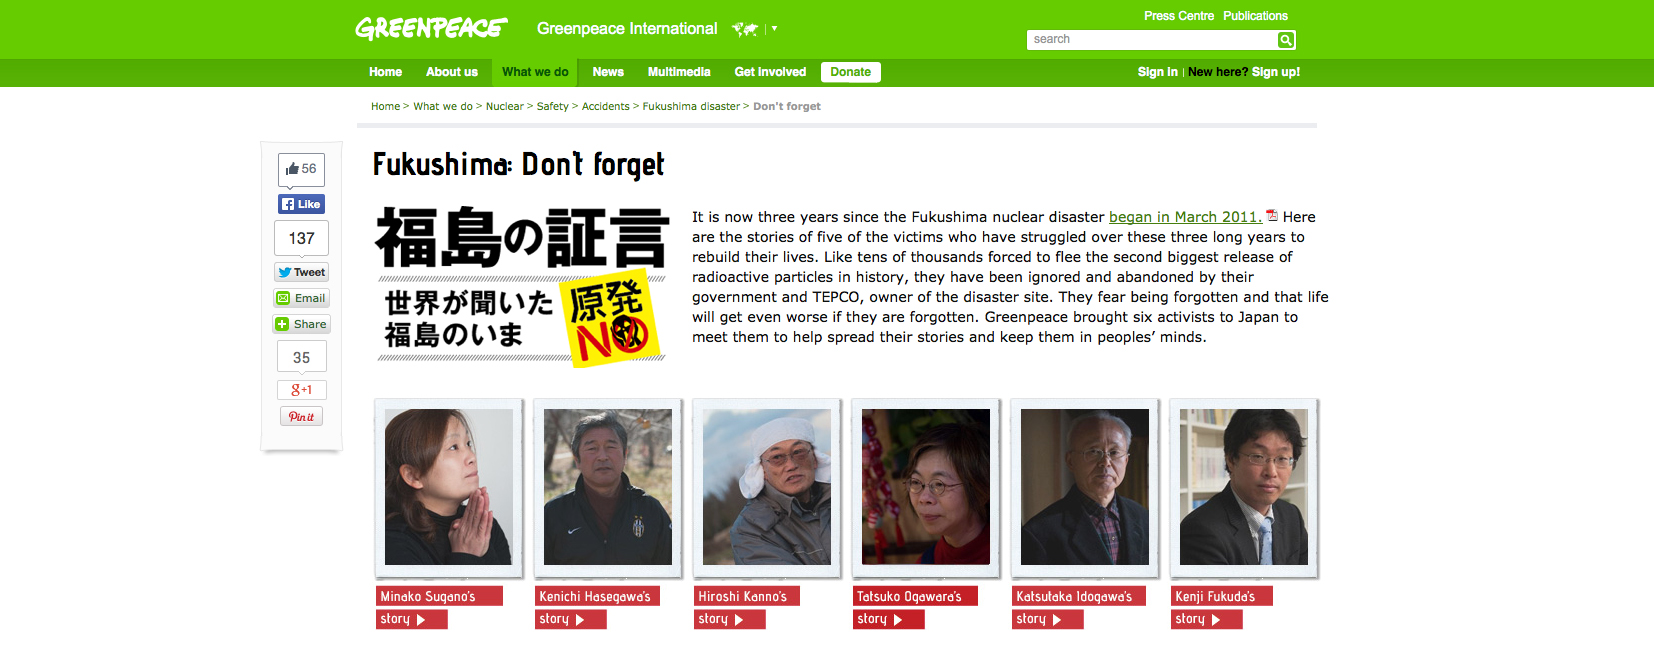 Greenpeace - Fukushima:Don't Forget